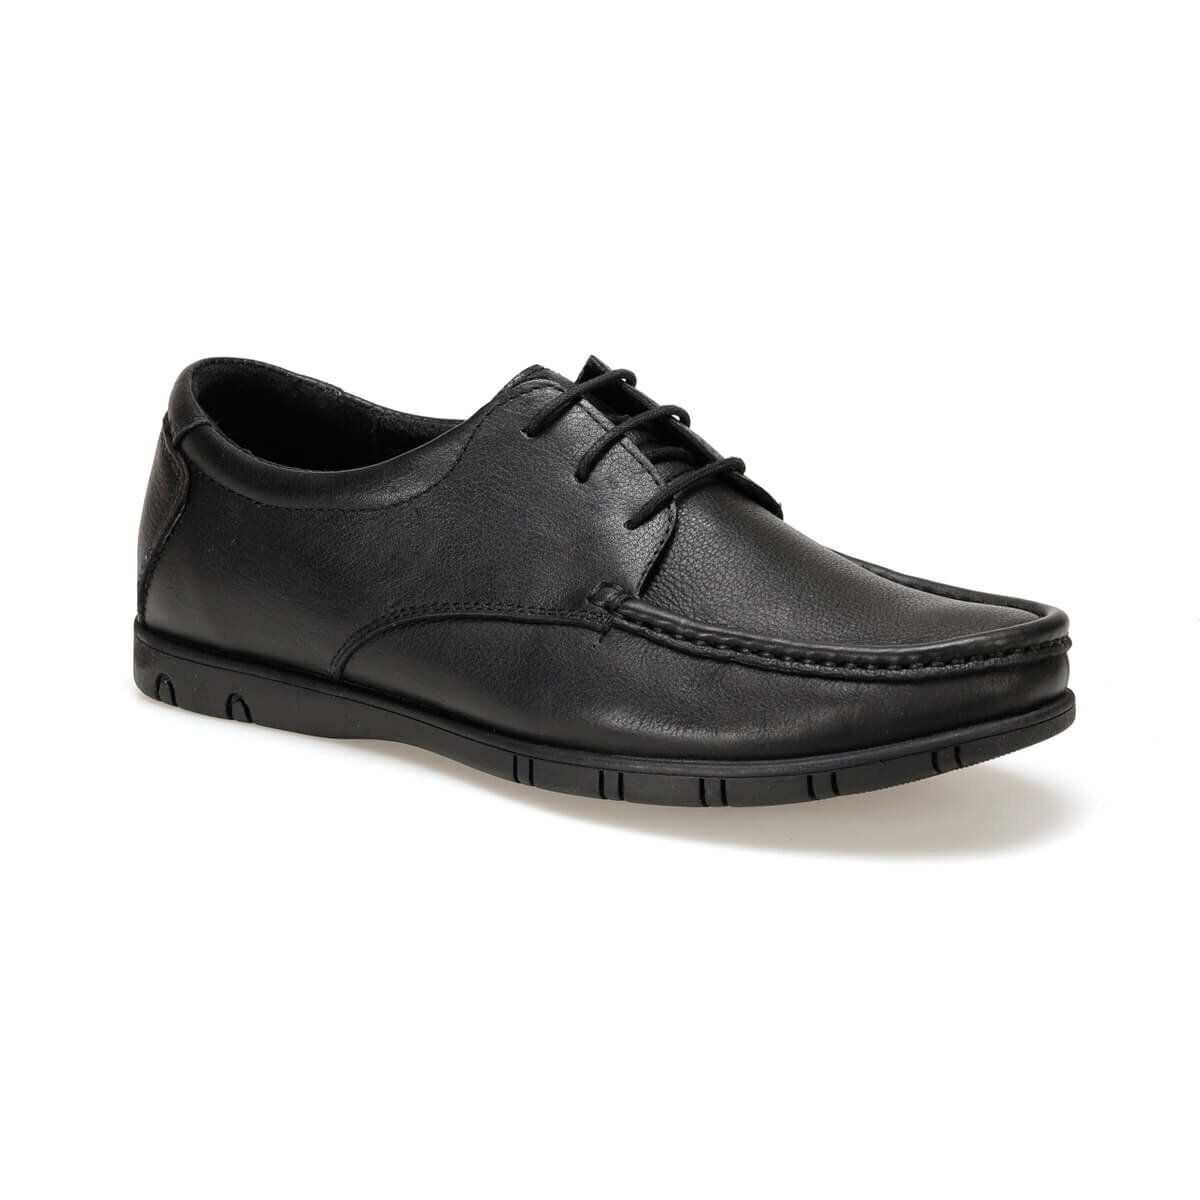 FLO D-04168-Y C 1494 Black Men 'S Classic Shoes Flogart